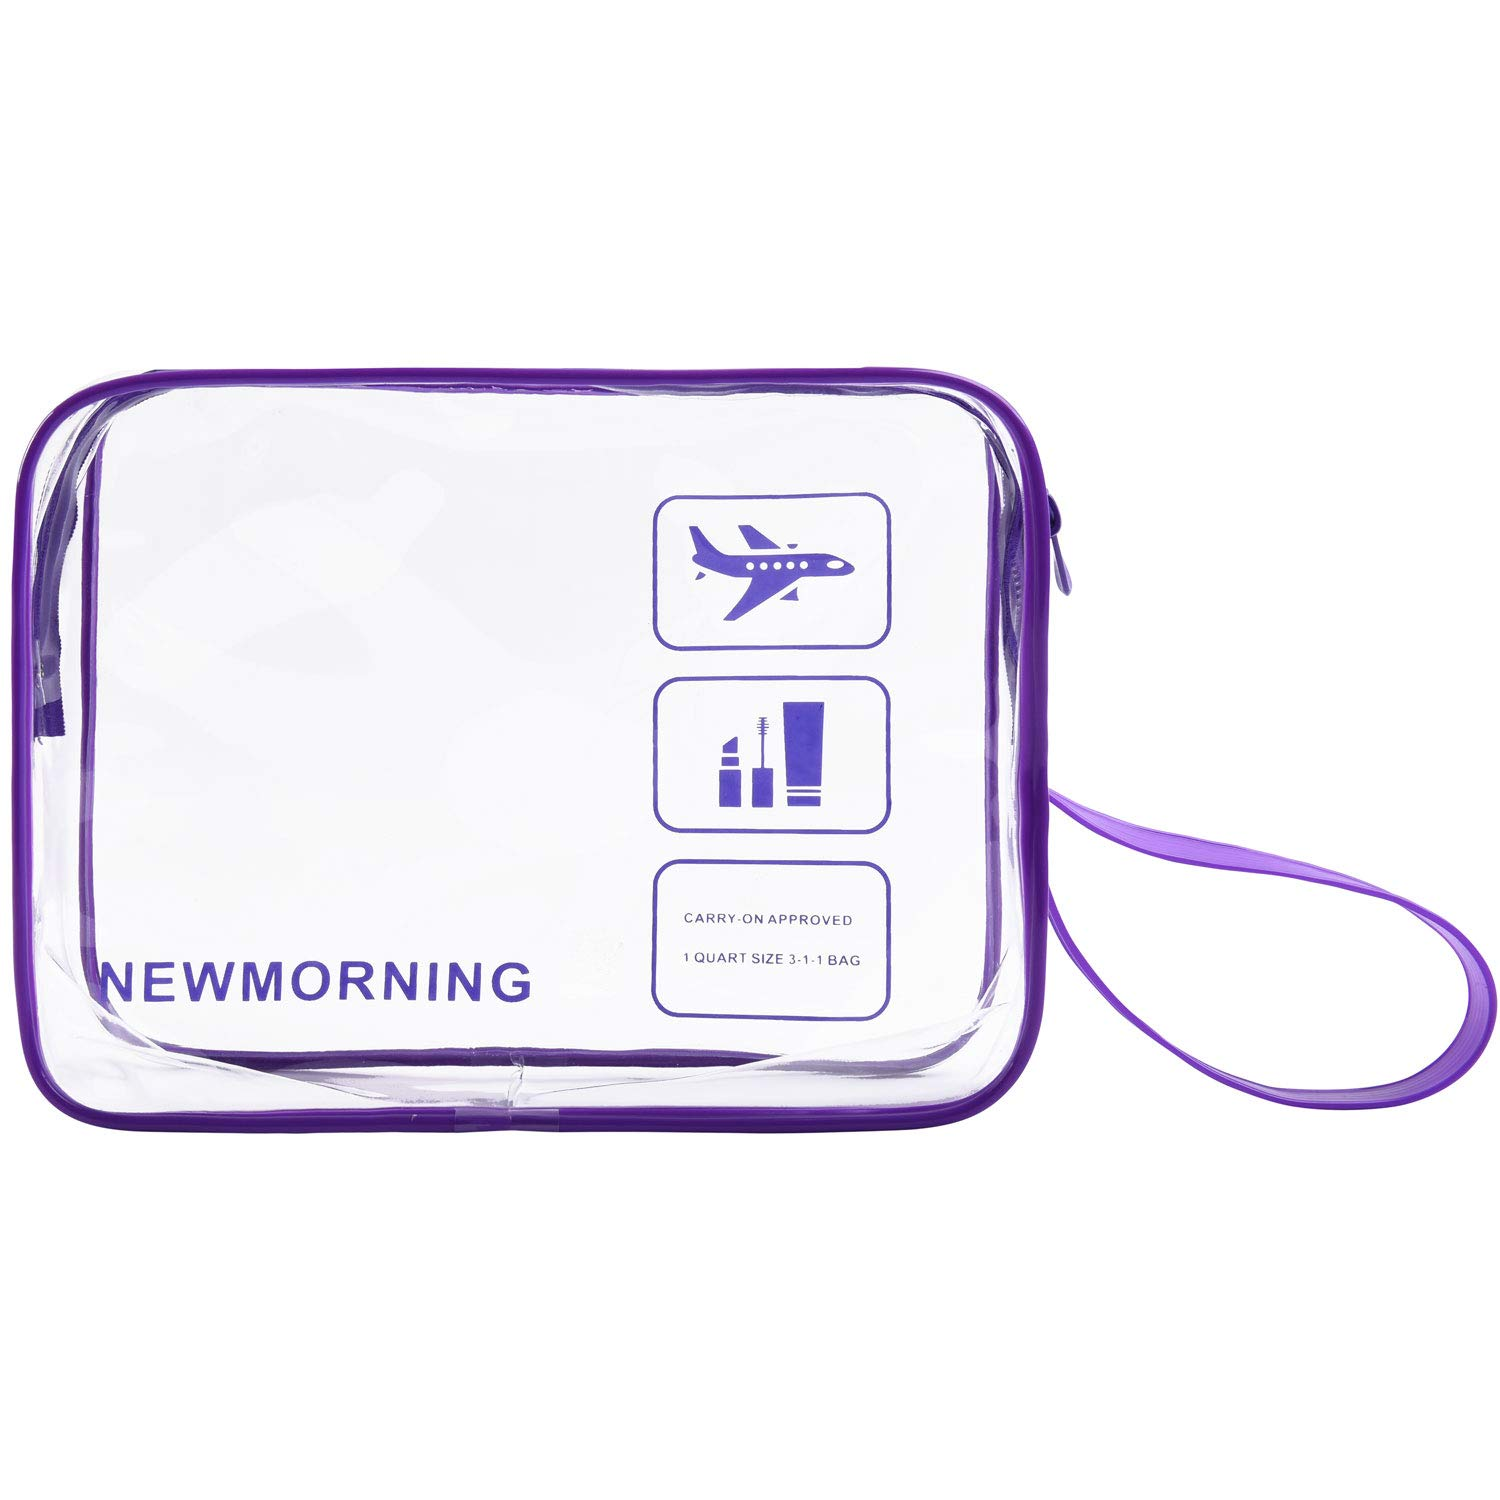 Travel Accessories TSA Approved Bag Travel Clear Toiletry Bag Quart Size 3-1-1with Zipper For Airline Cosmetic Bag Small luggage Travel Bag For liquids,Toothbrush,Razor.etc For Men Women Child.Purple